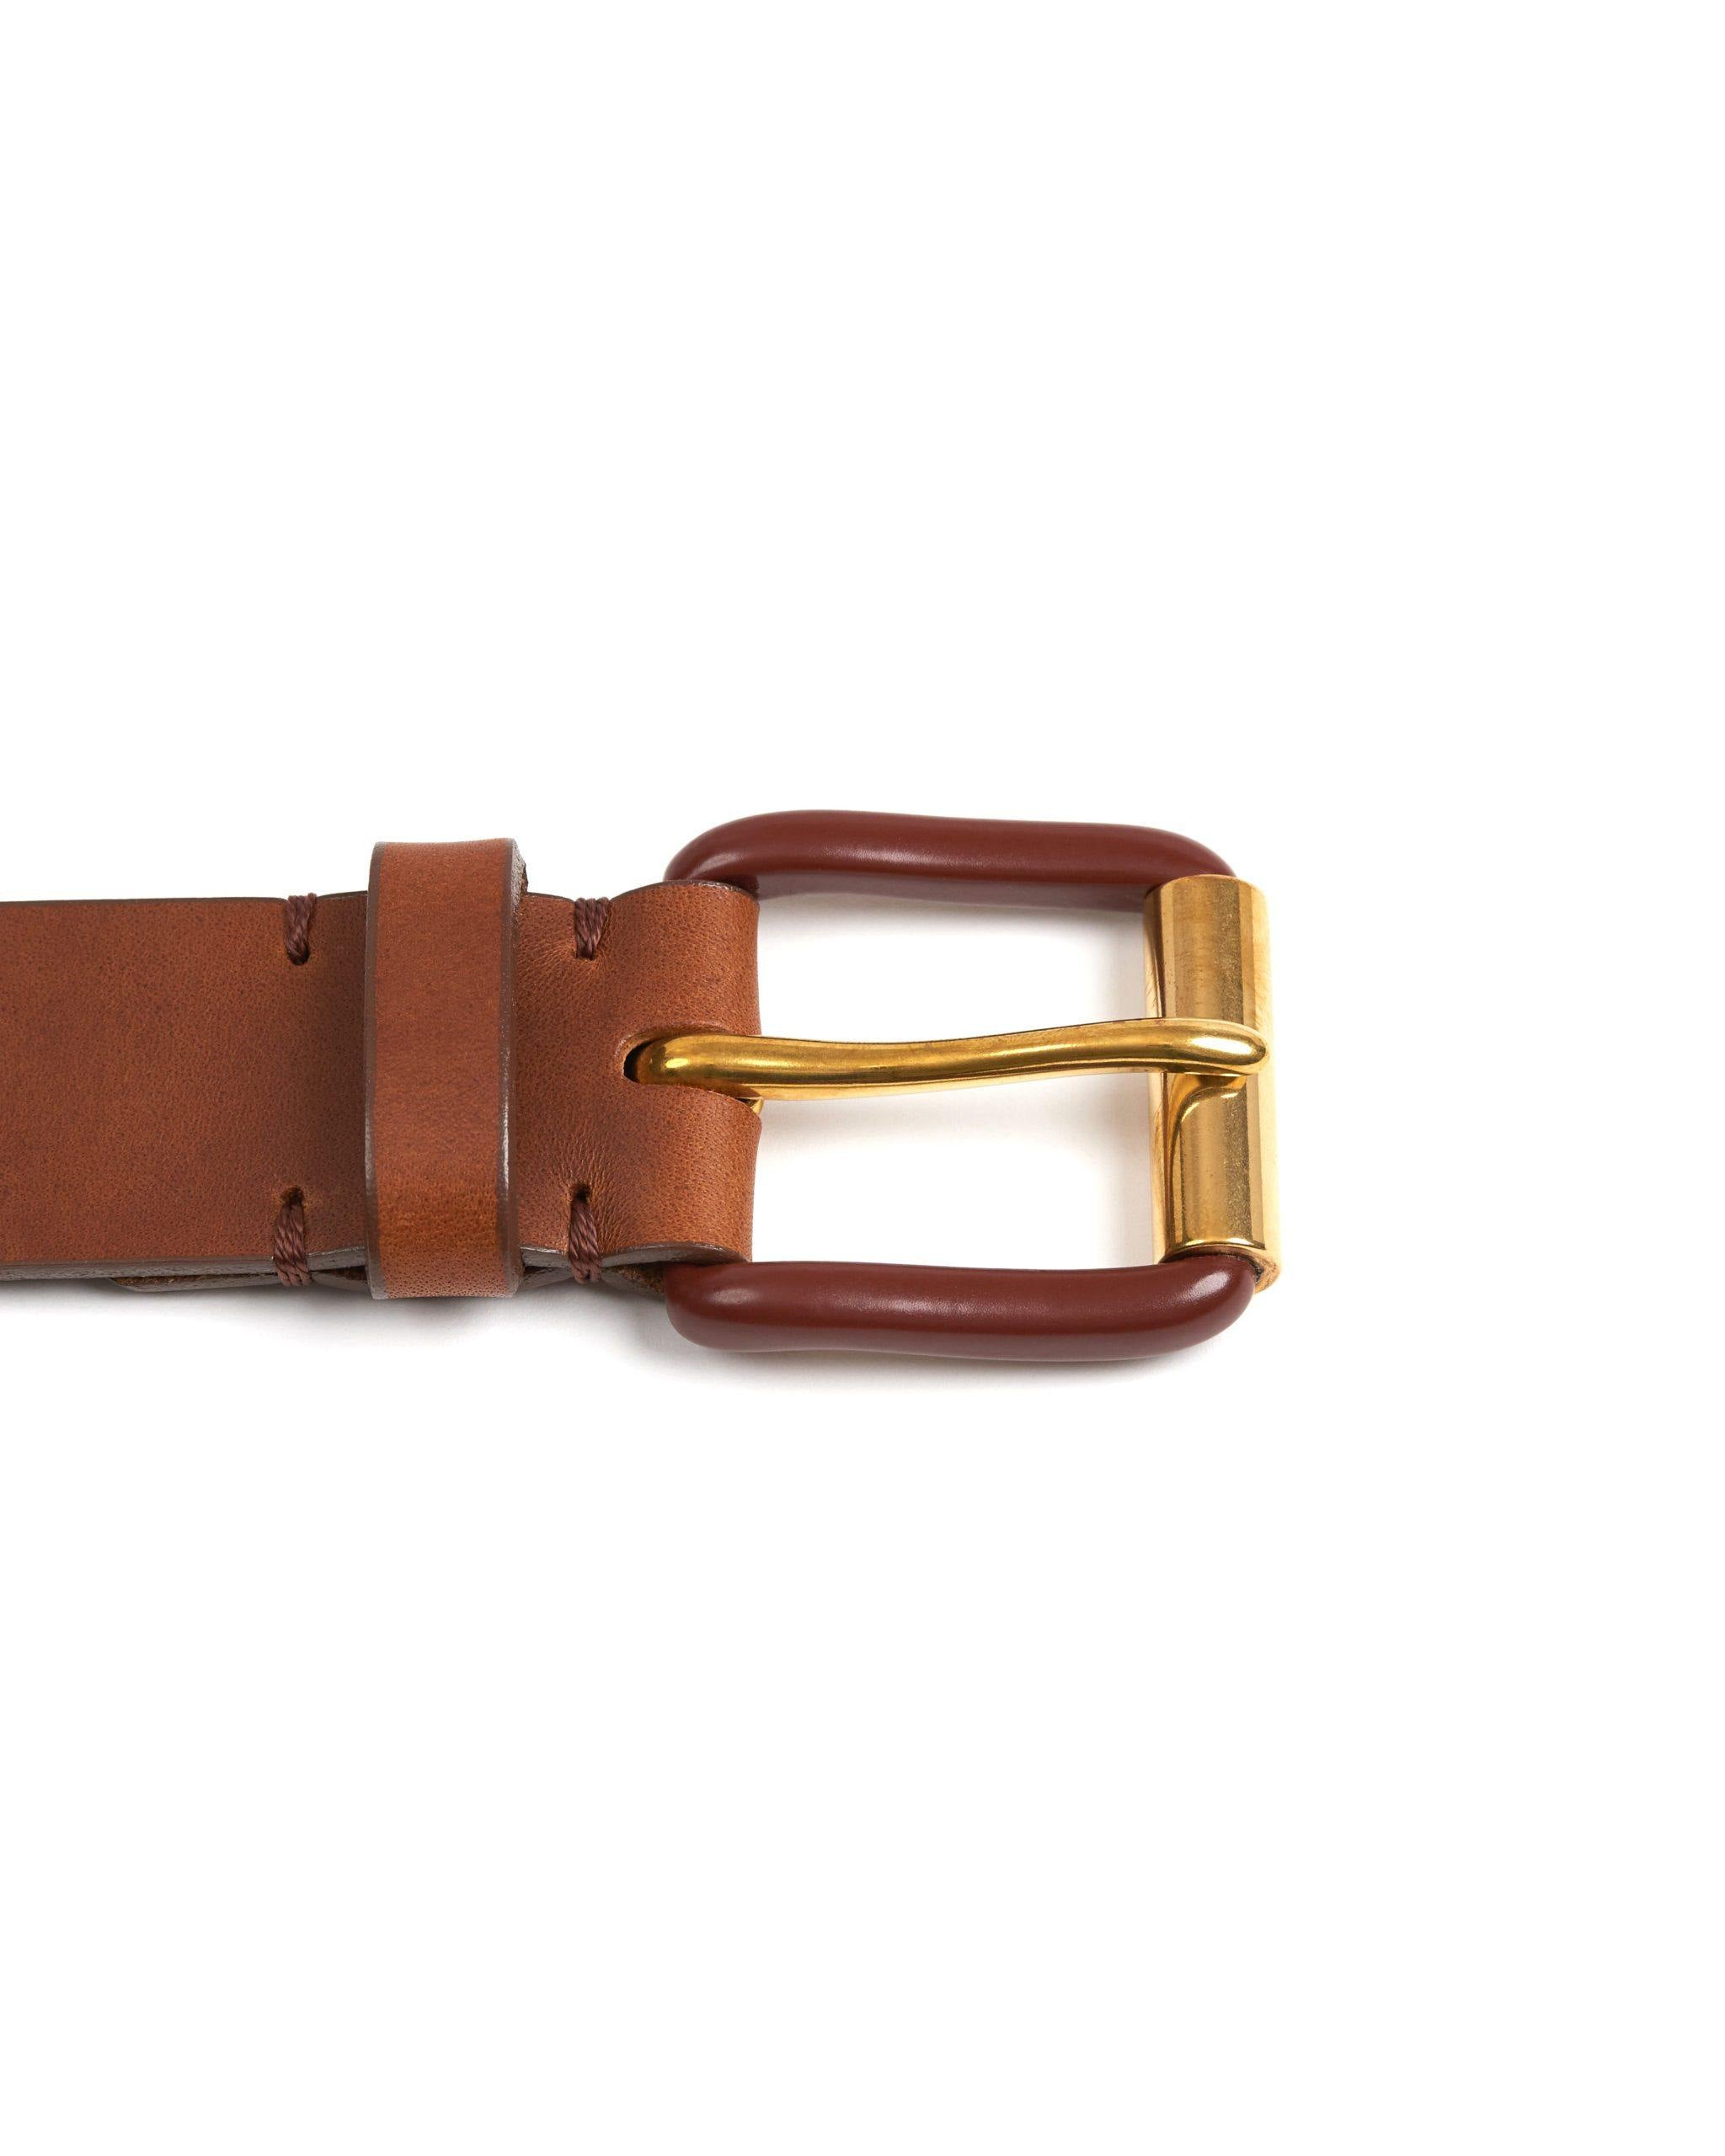 Modernist Exposed - Saddle Brown / Brass - Debonair